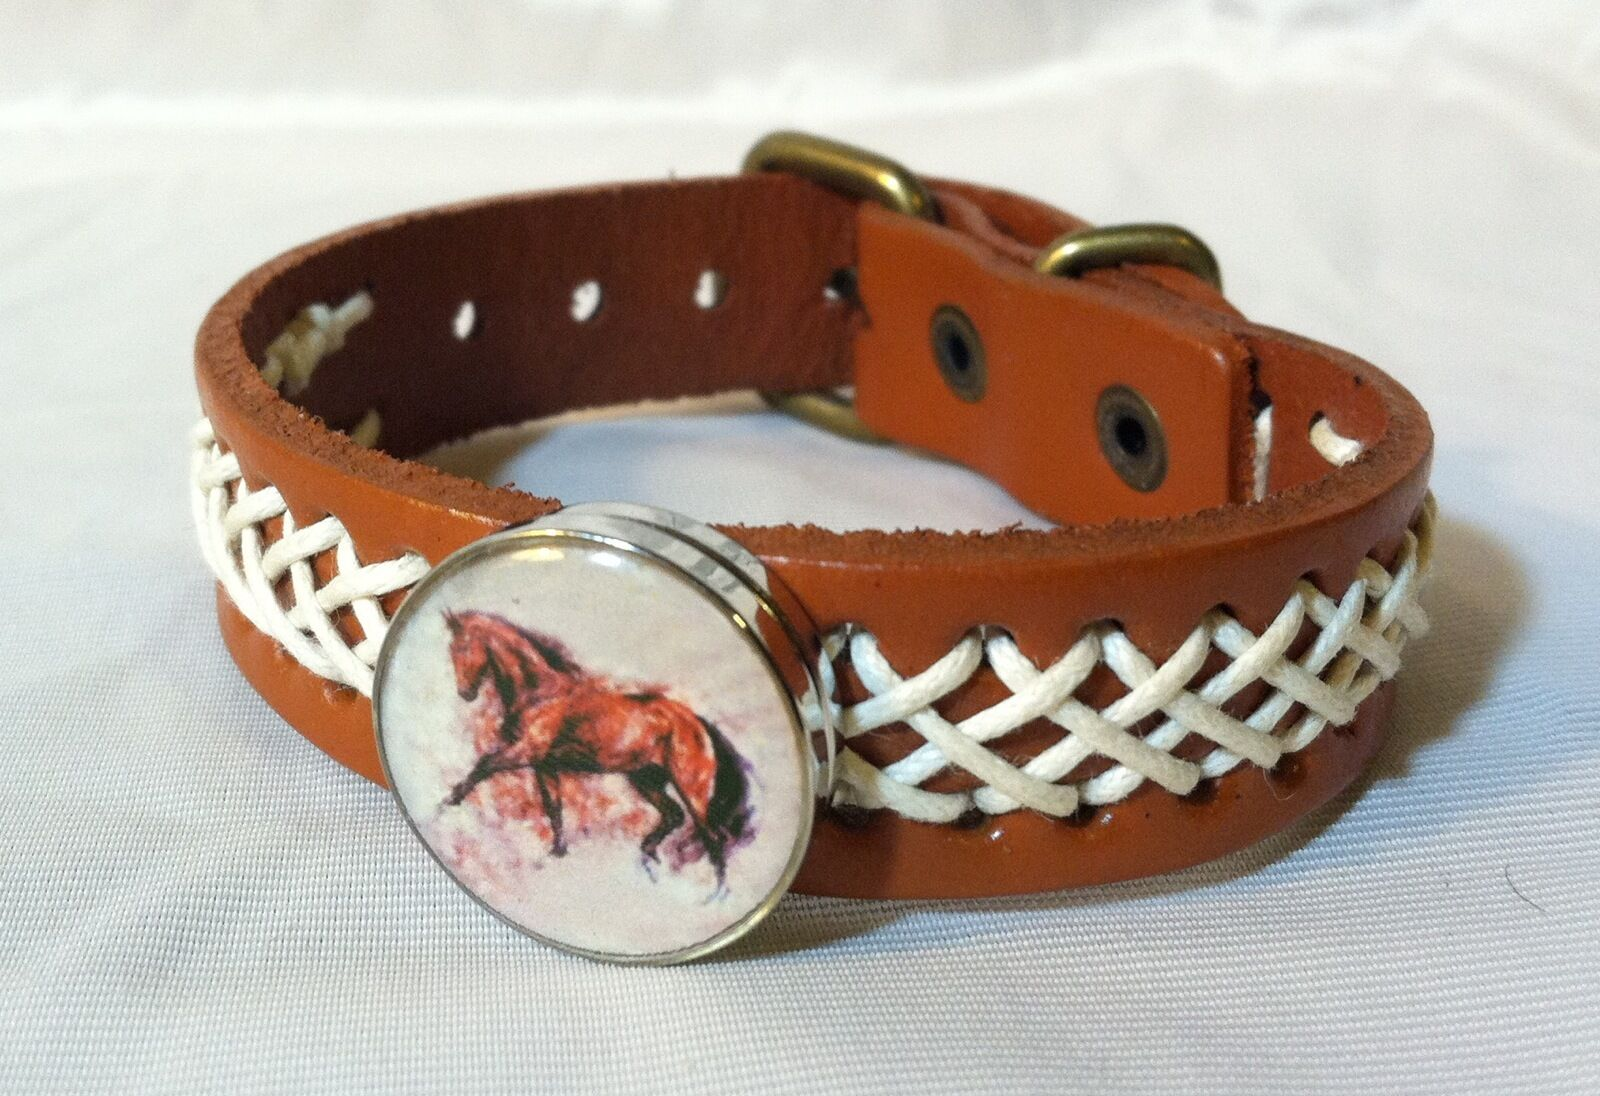 HORSE SNAP & LEATHER Twine Stitch BRACELET 18-20MM BAY HORSE TredTING BUBBLES